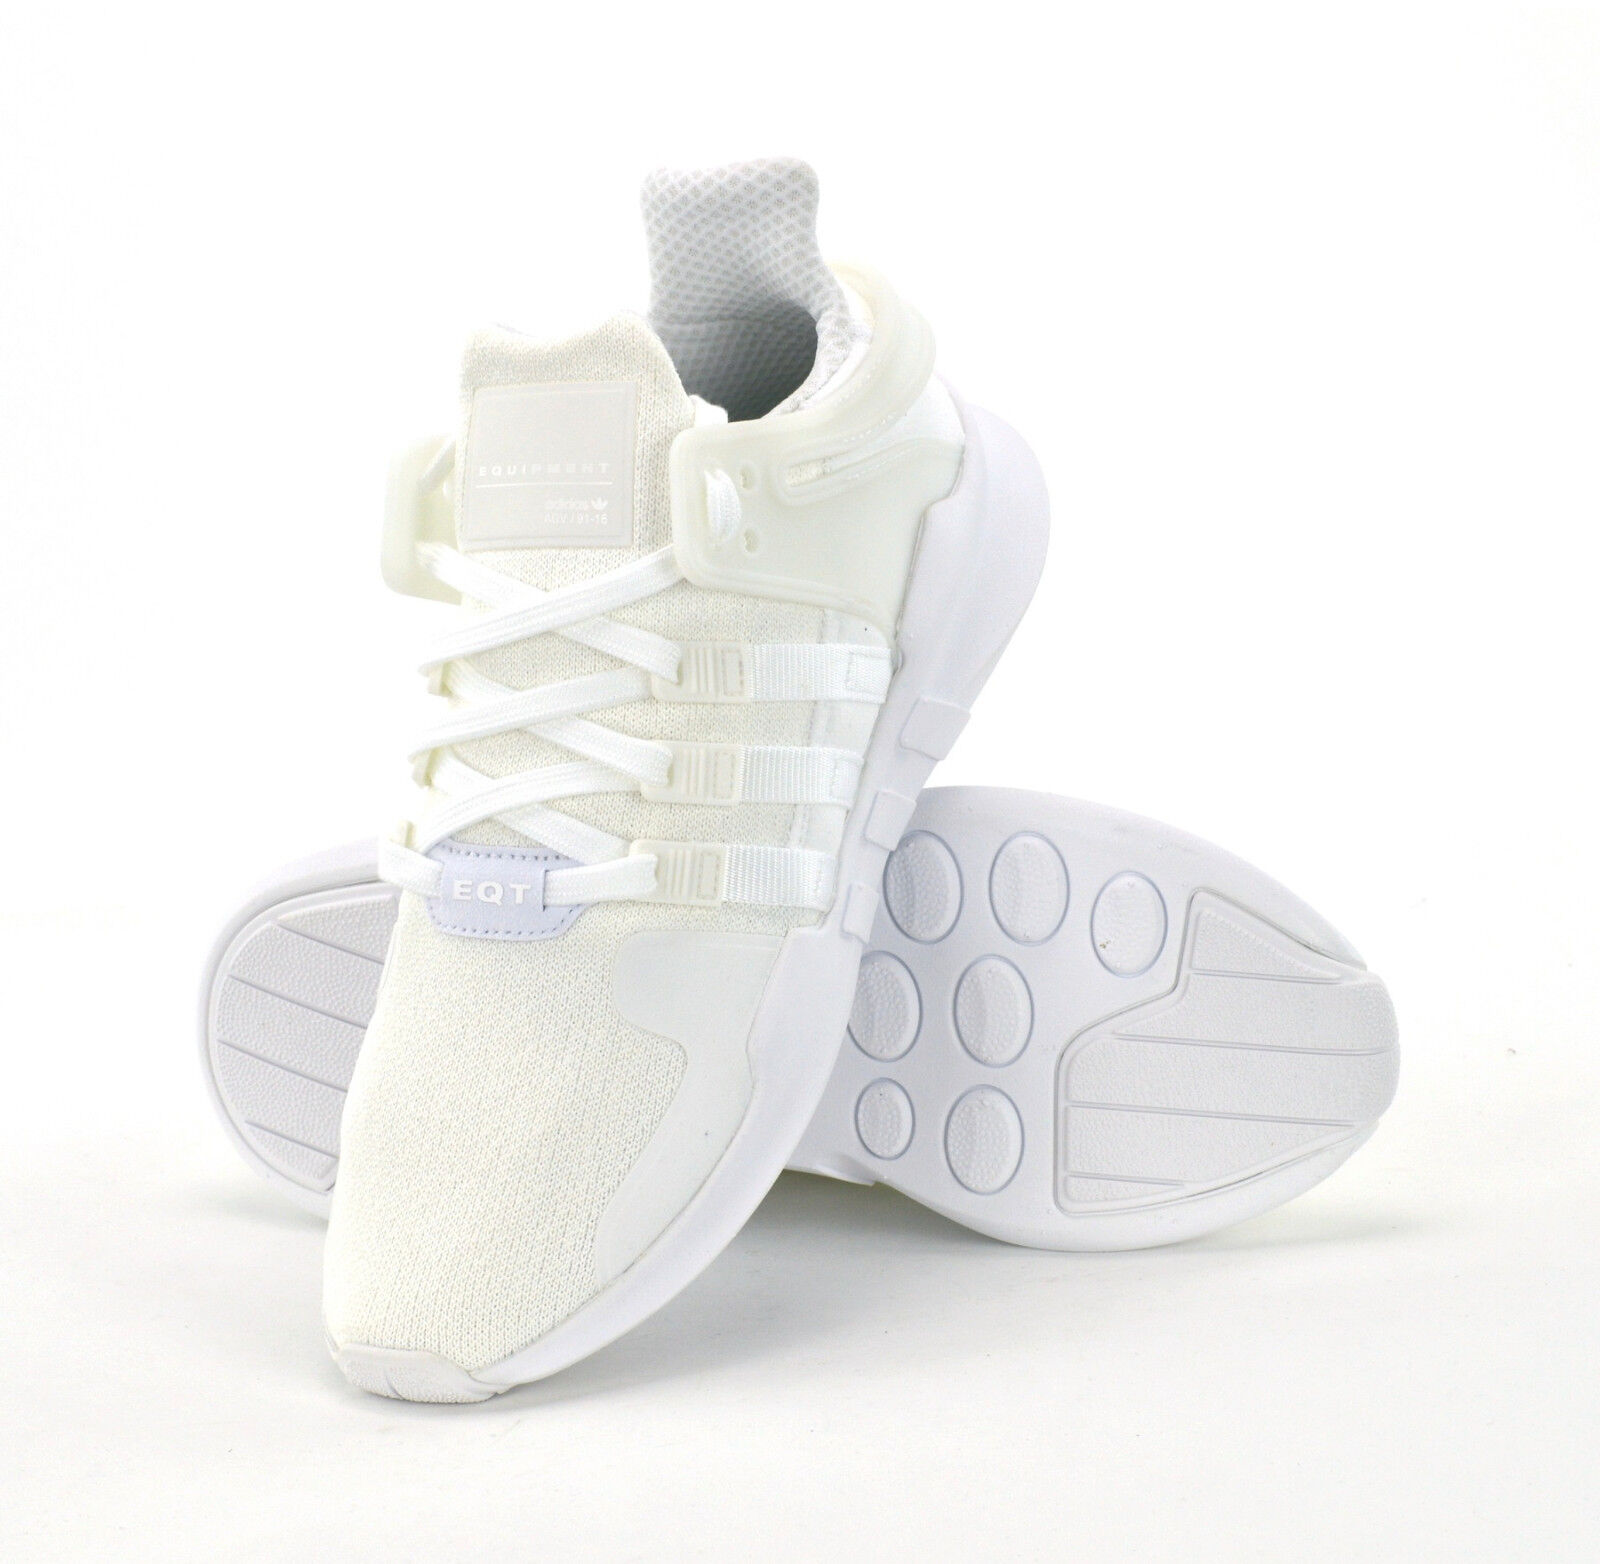 ADIDAS EQT SUPPORT ADV - CP9558 - MENS TRAINERS - WHITE - BRAND NEW